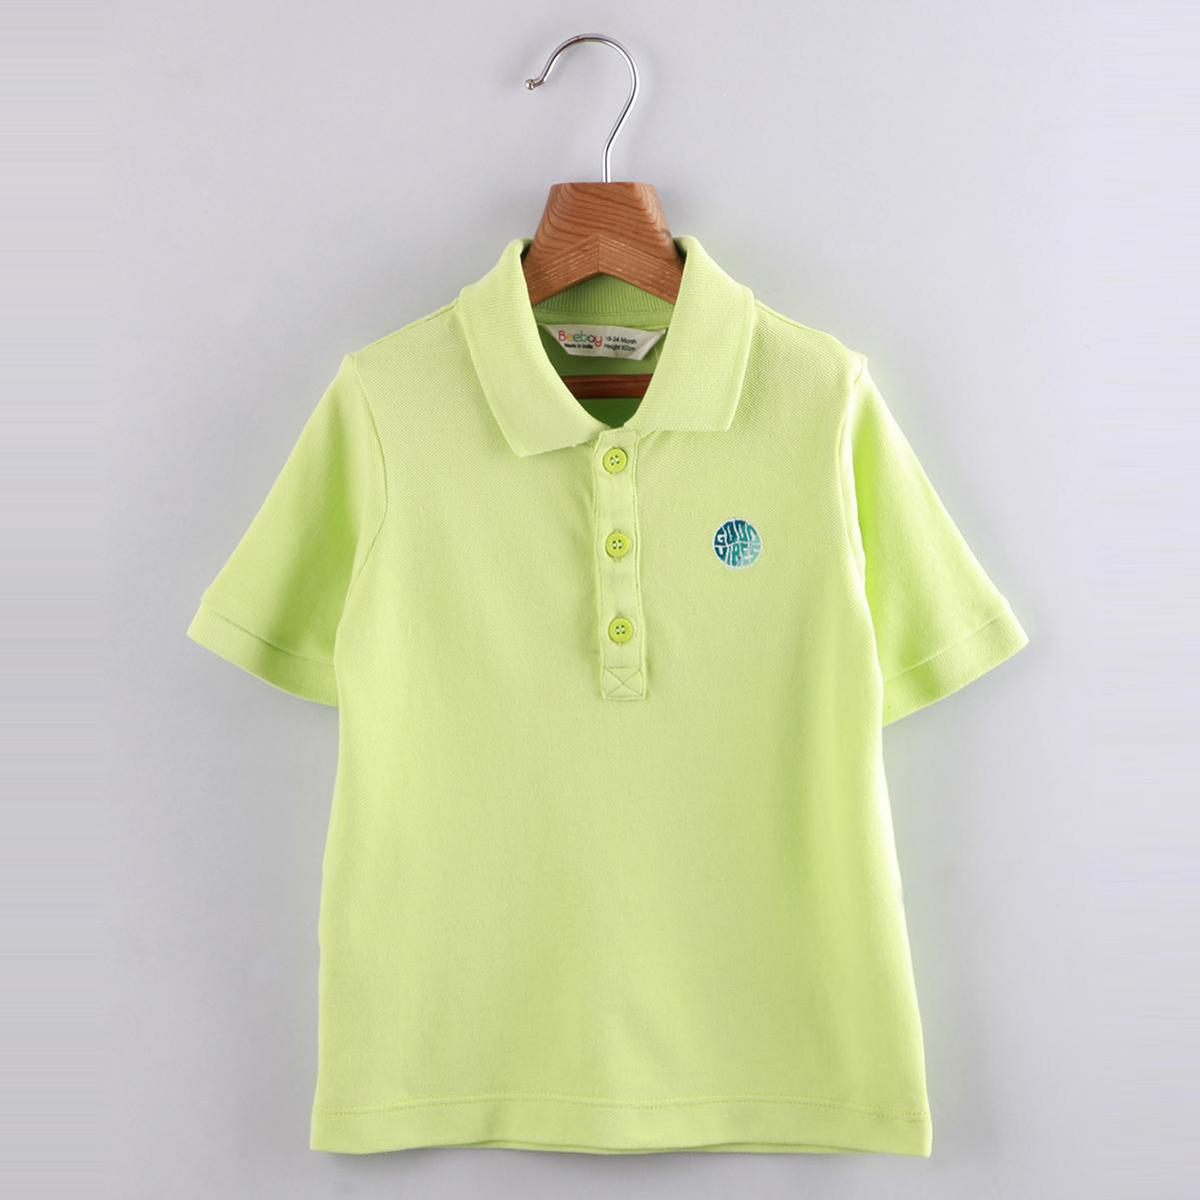 Beebay - Good Vibes Embroidery Polo T- Shirt (Green)